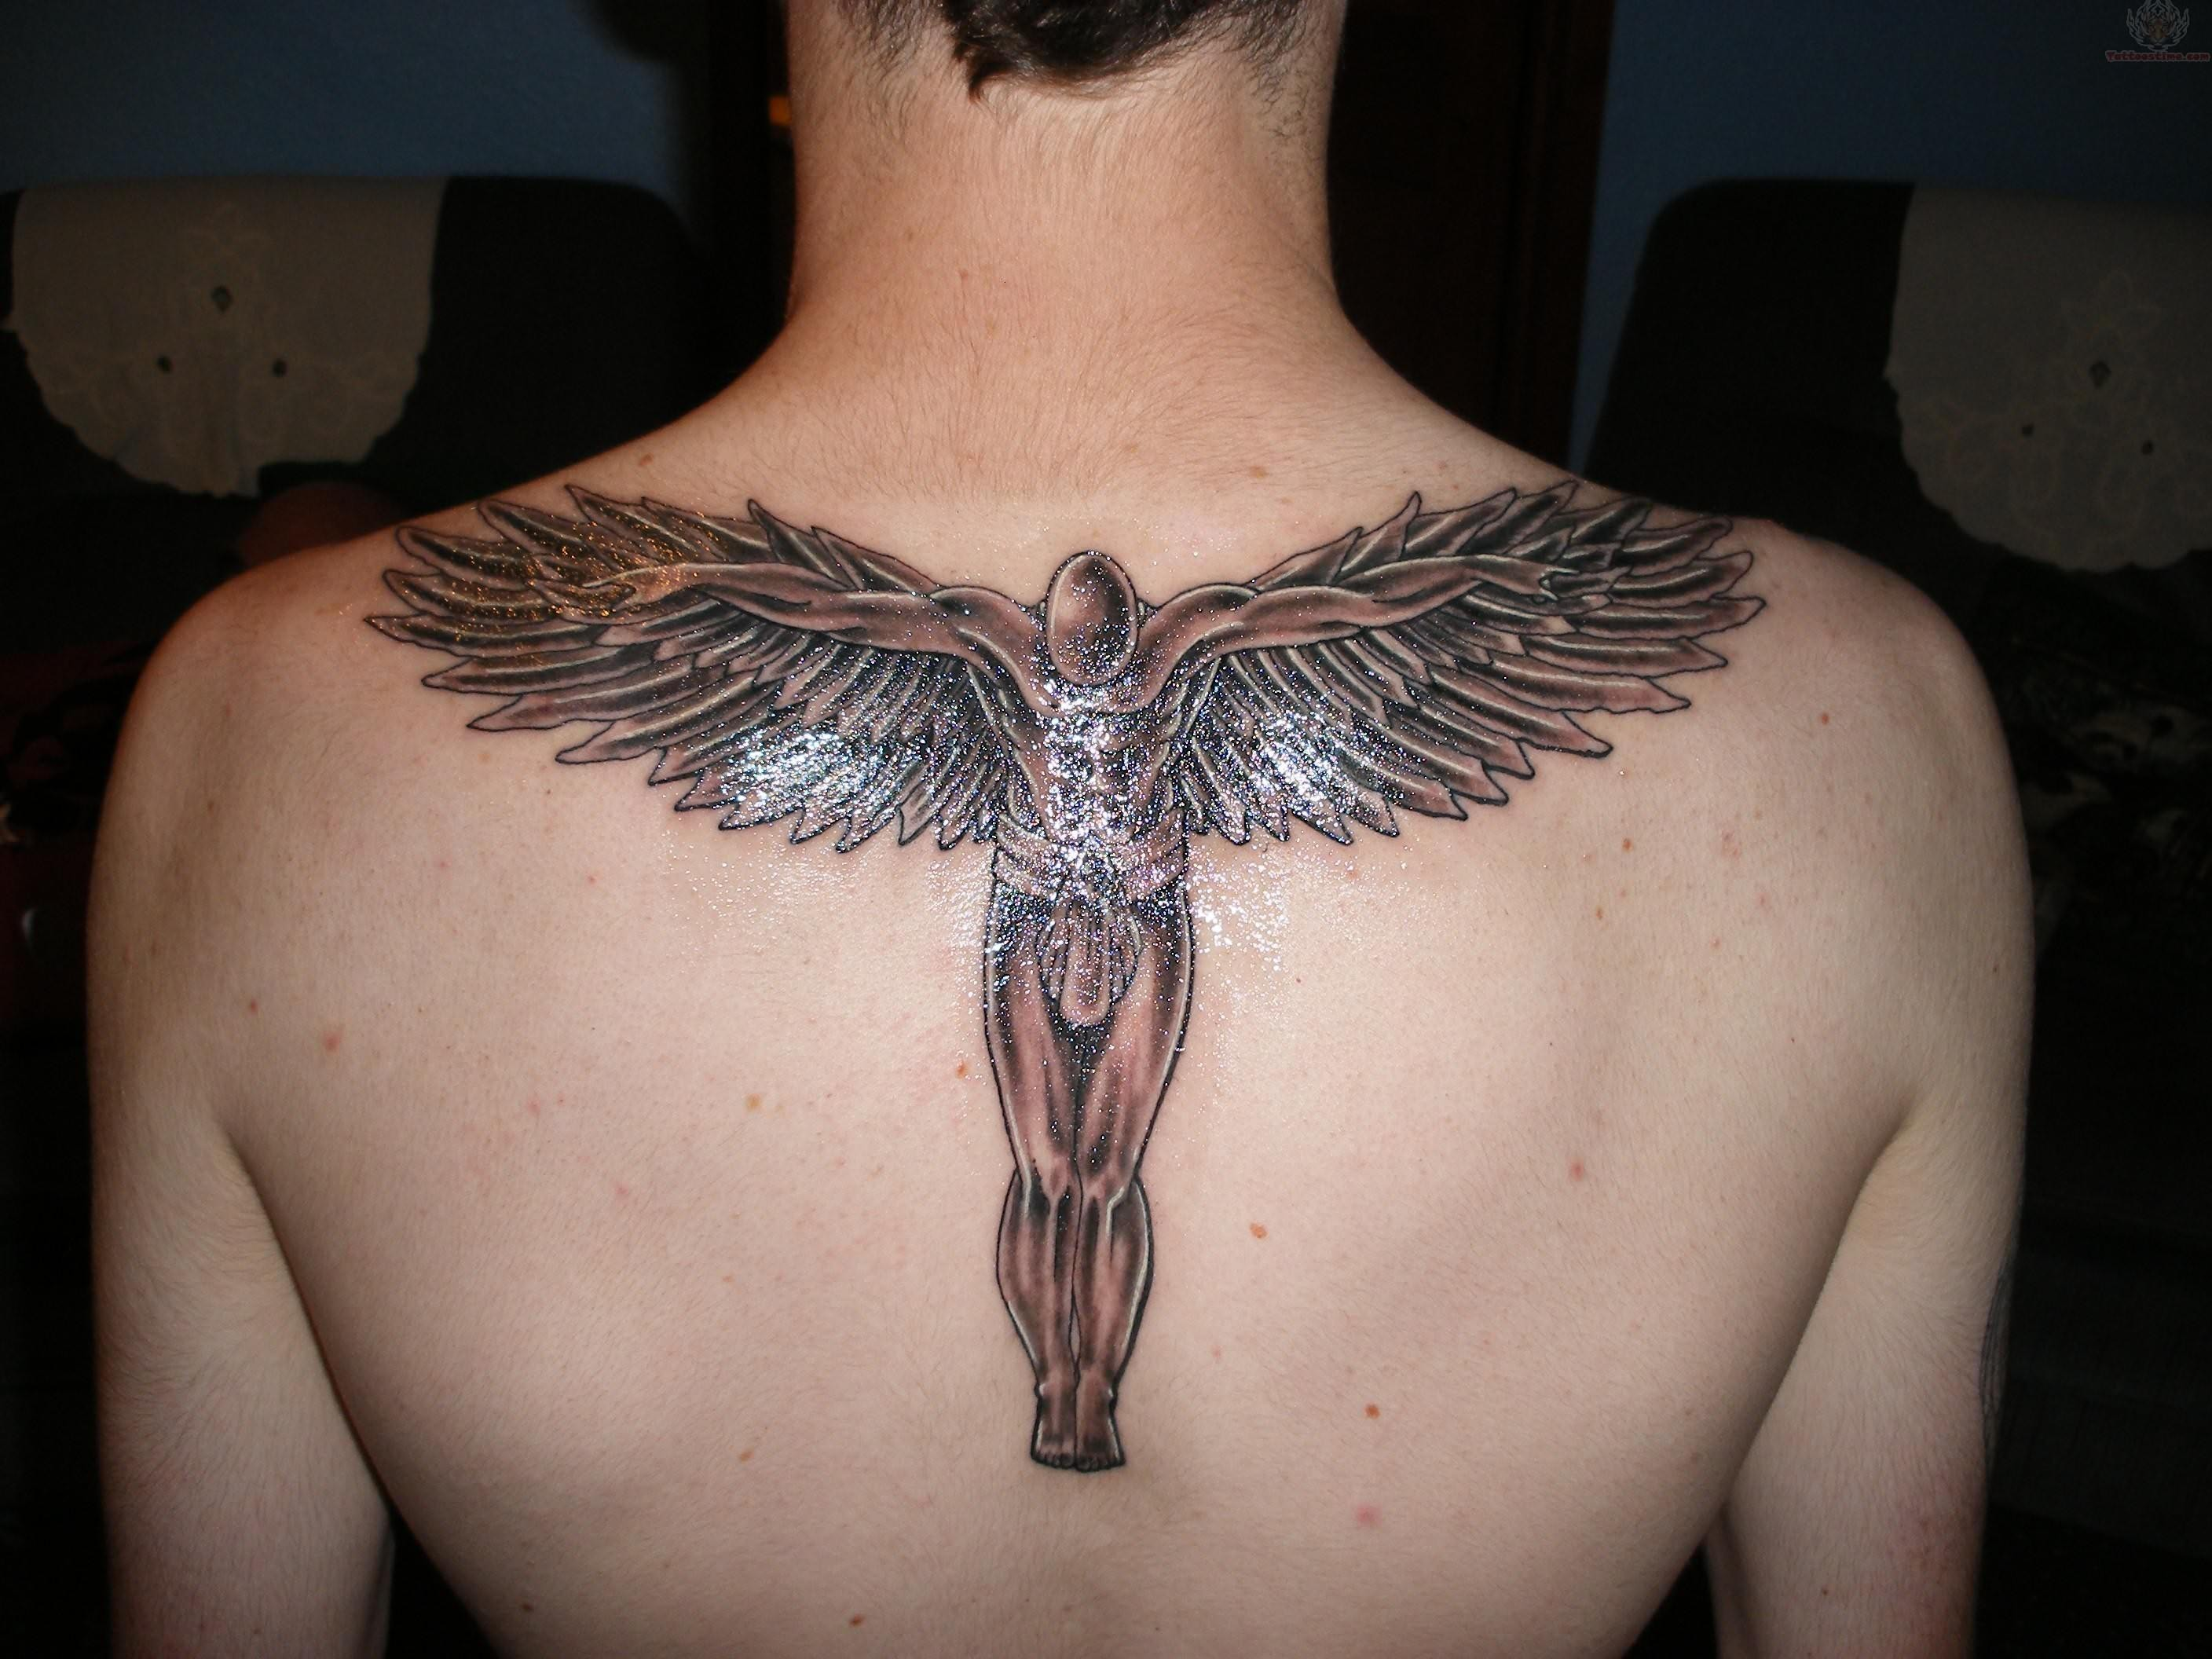 Tattoo Ideas On Back: Angle-brown-mens-back-tattoo.jpg